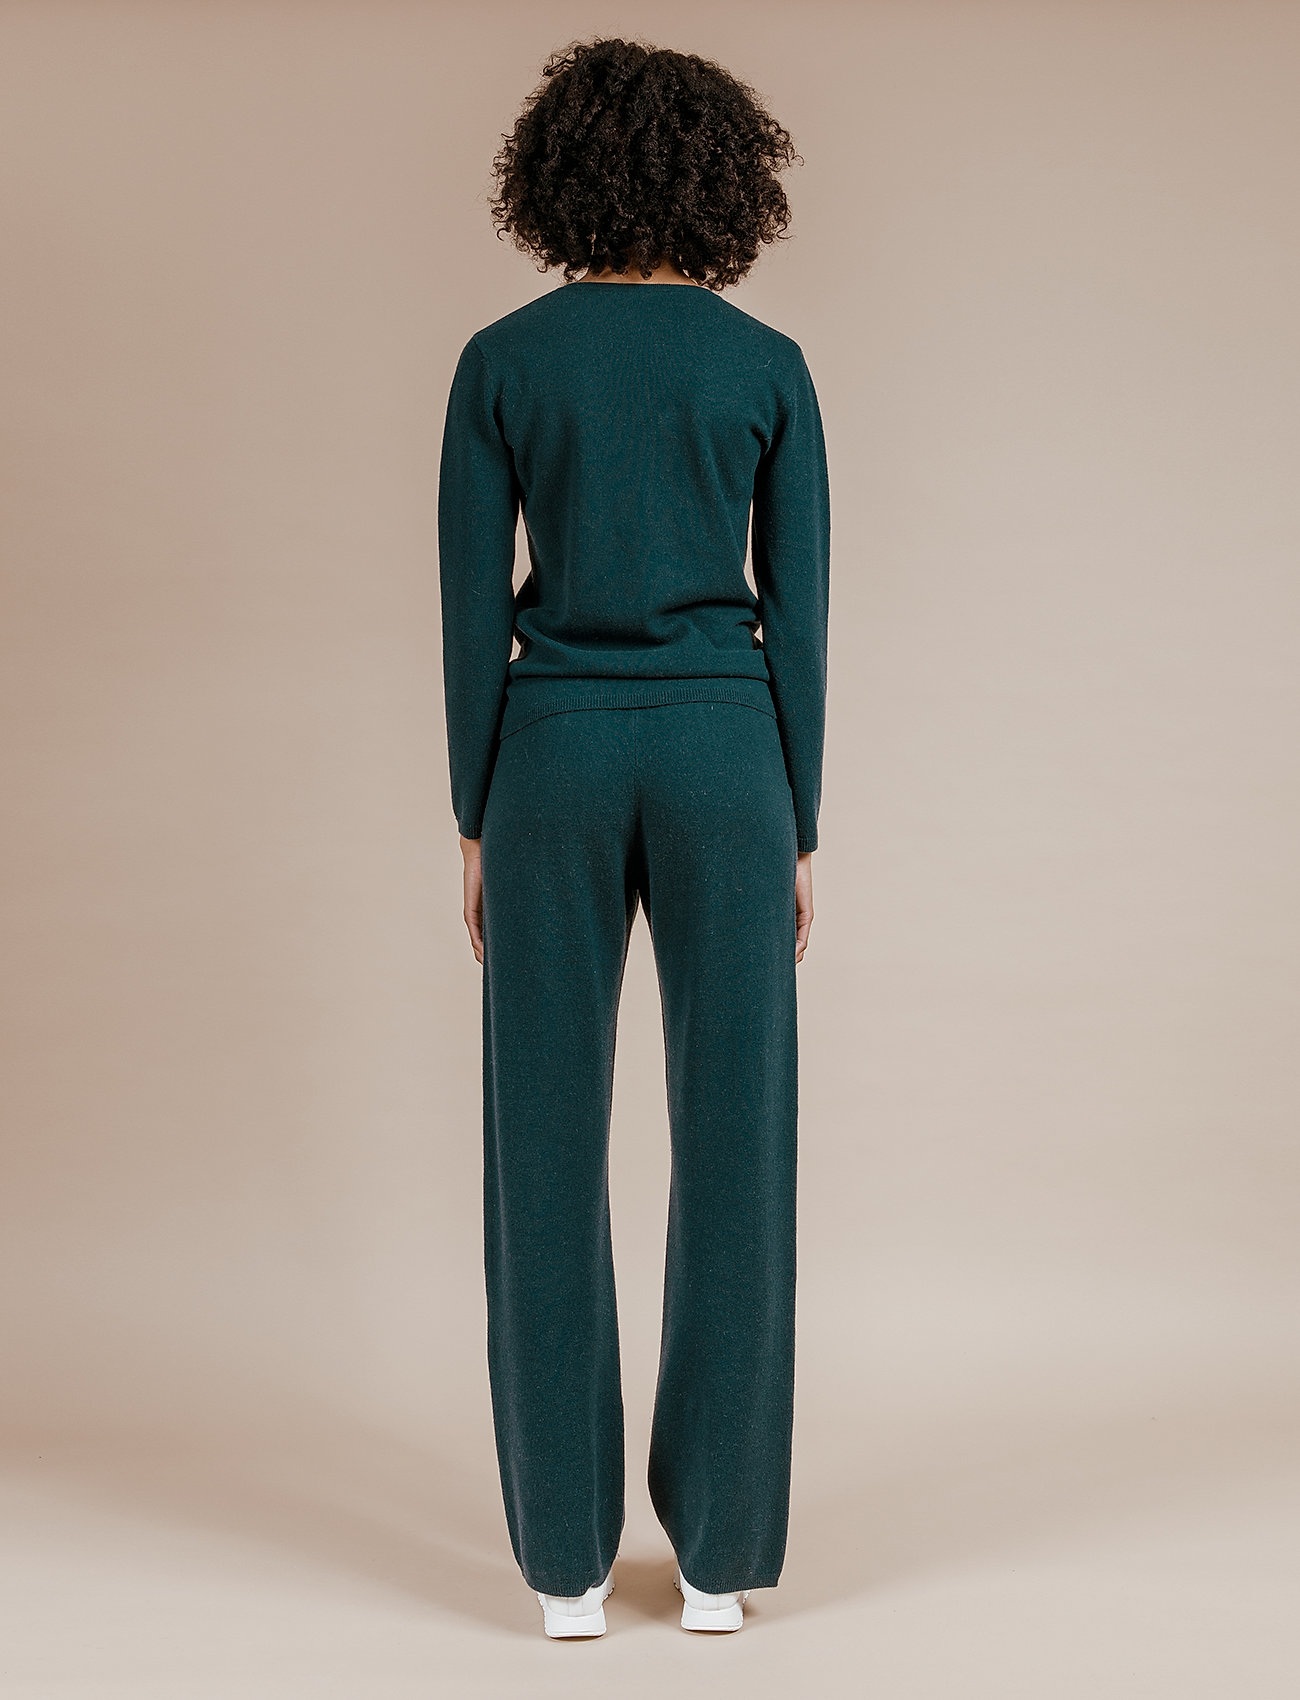 Andiata - Christie knit joggers - kleidung - teal green - 4